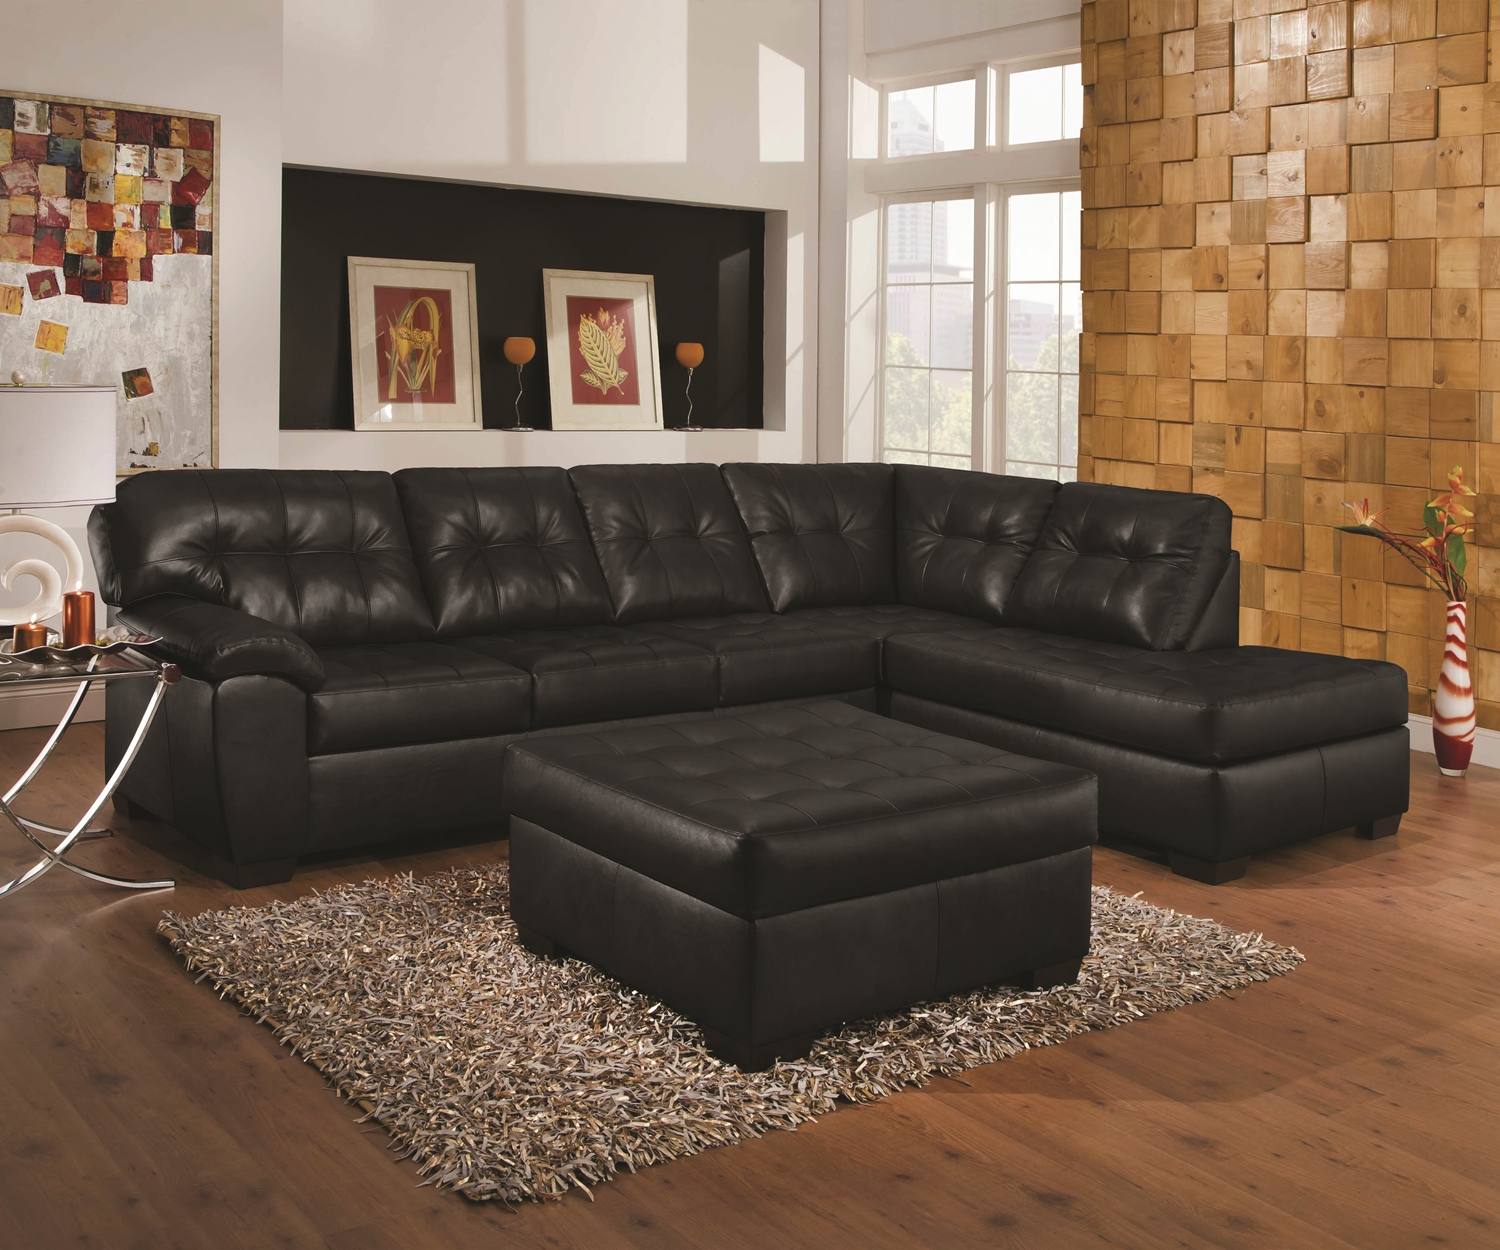 Fantastic Simmons Soho Sectional With Ottoman Onyx Caraccident5 Cool Chair Designs And Ideas Caraccident5Info